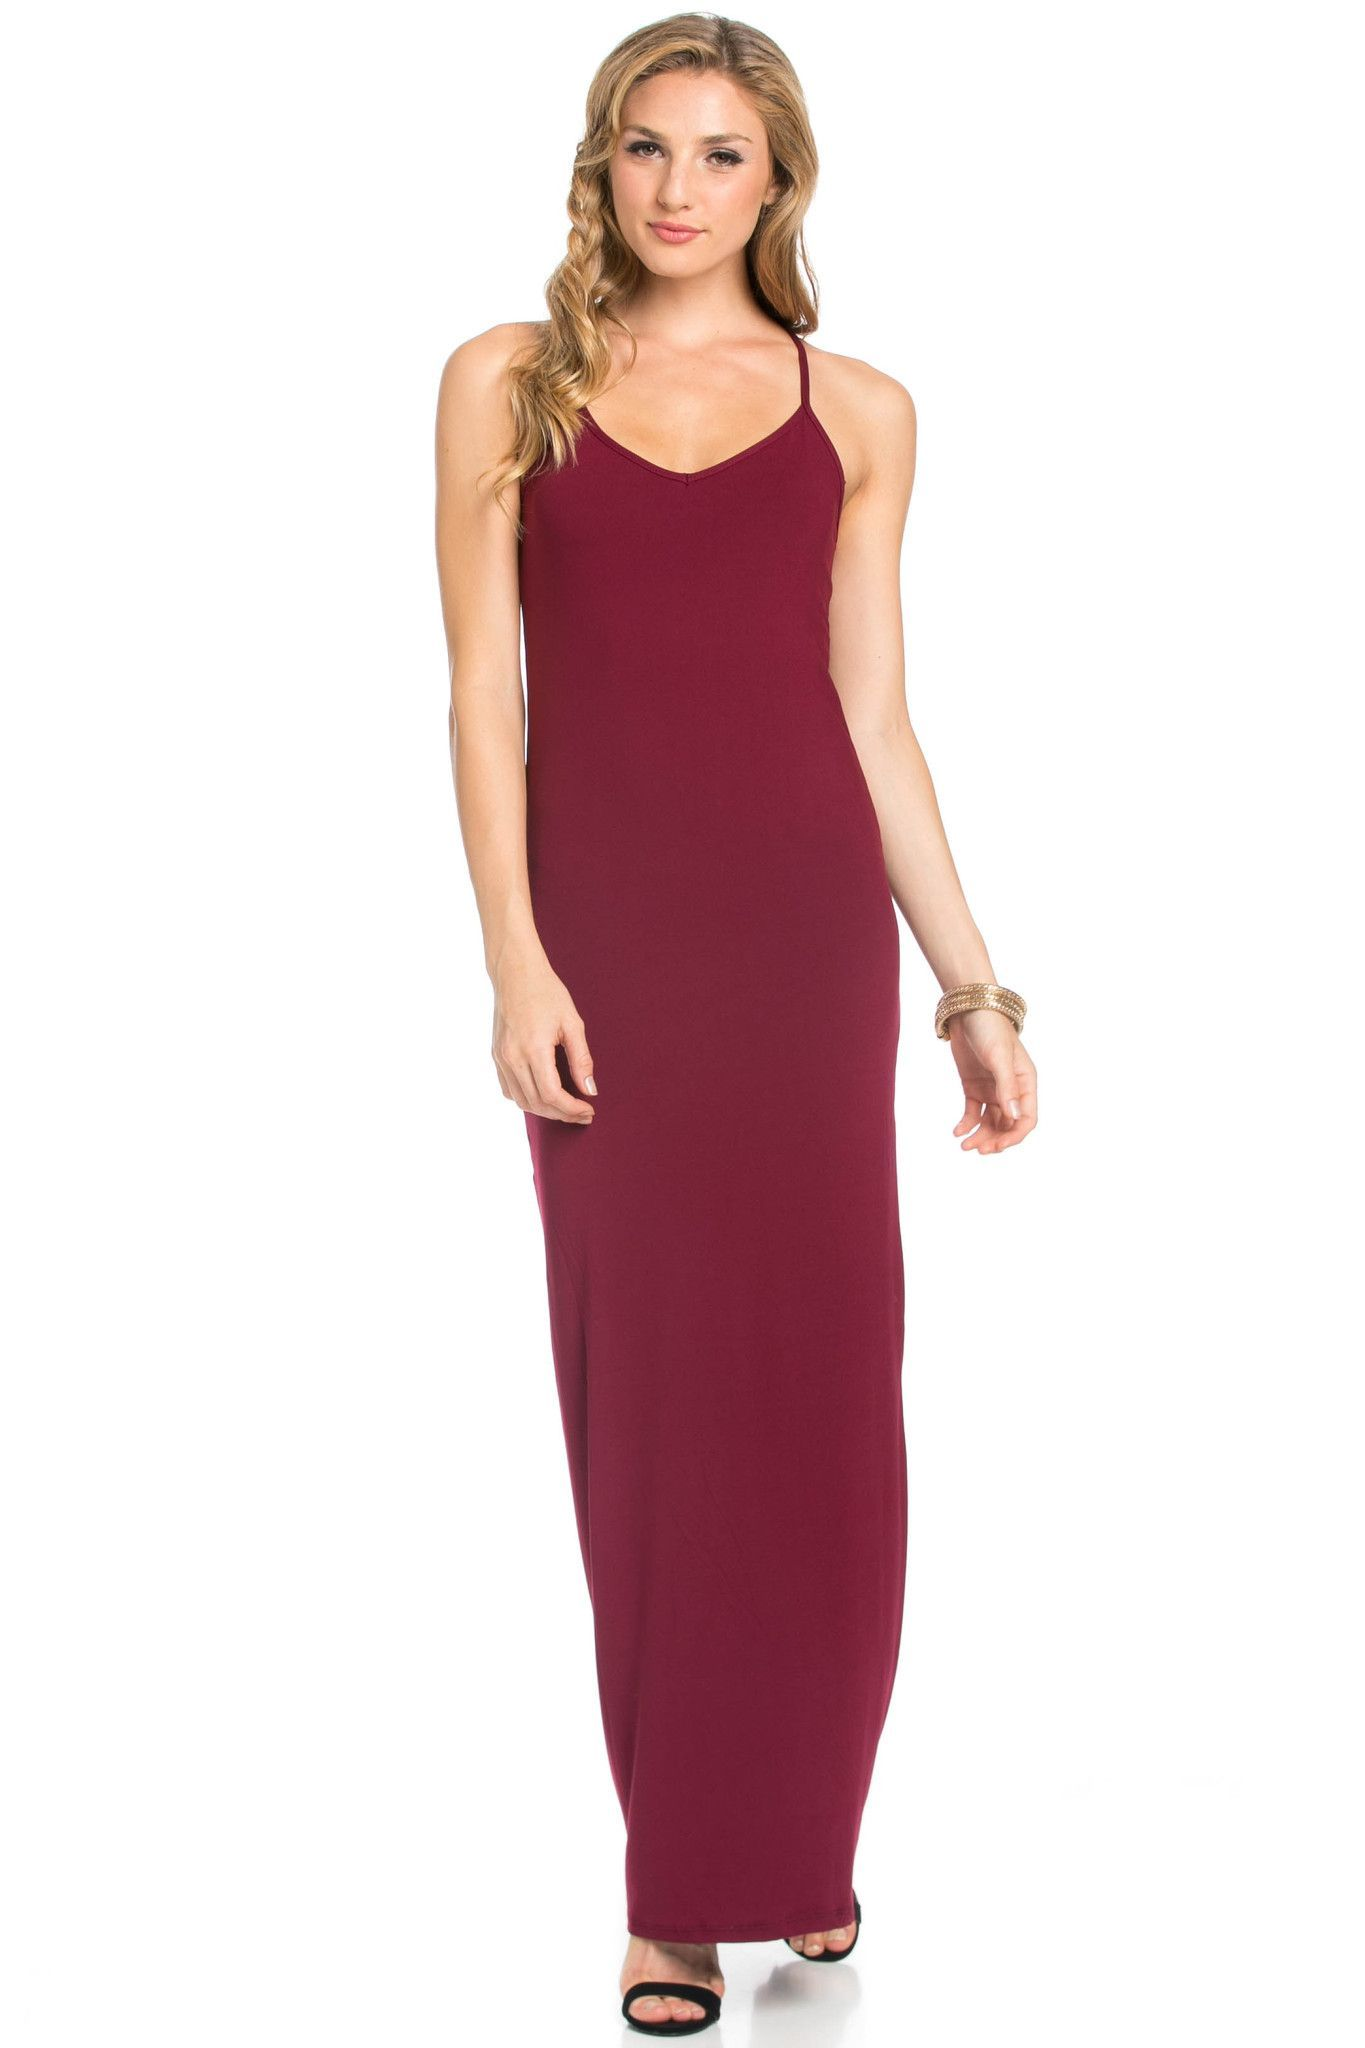 6219f5666601 Look totally standout this season in this burgundy maxi dress. In figure  flattering micro suede fabric